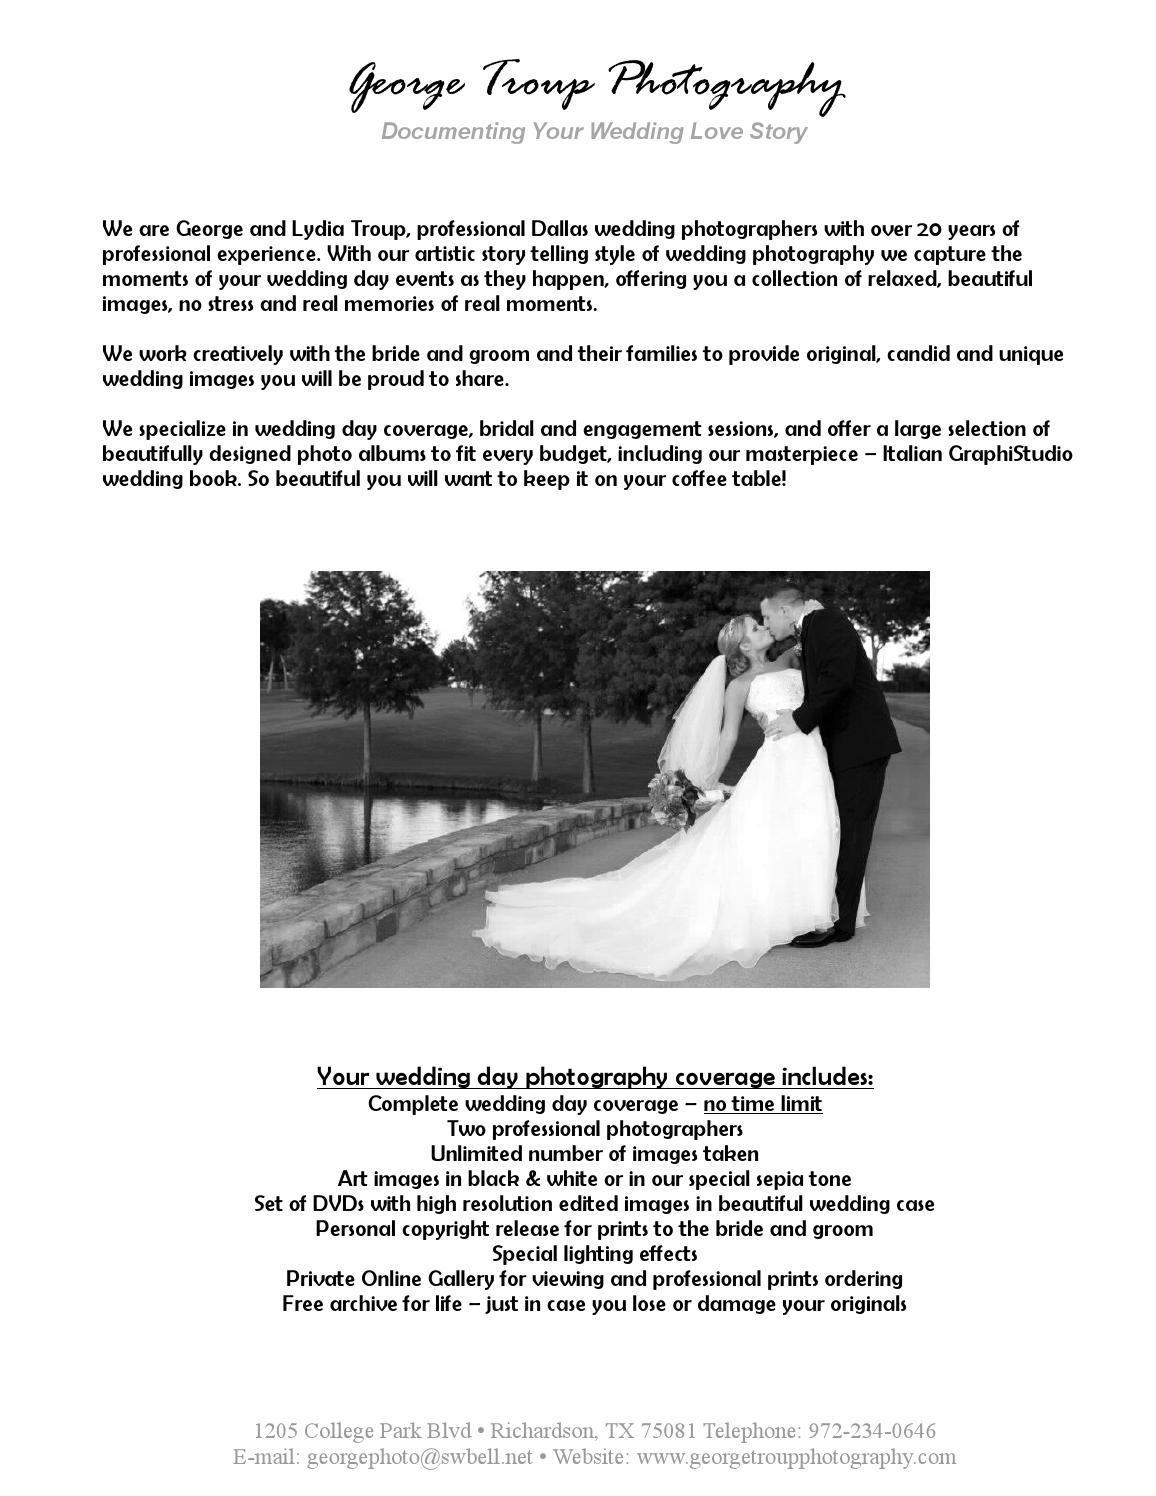 Wedding Photography Rate: Wedding Photography Rates By George Troup Photography